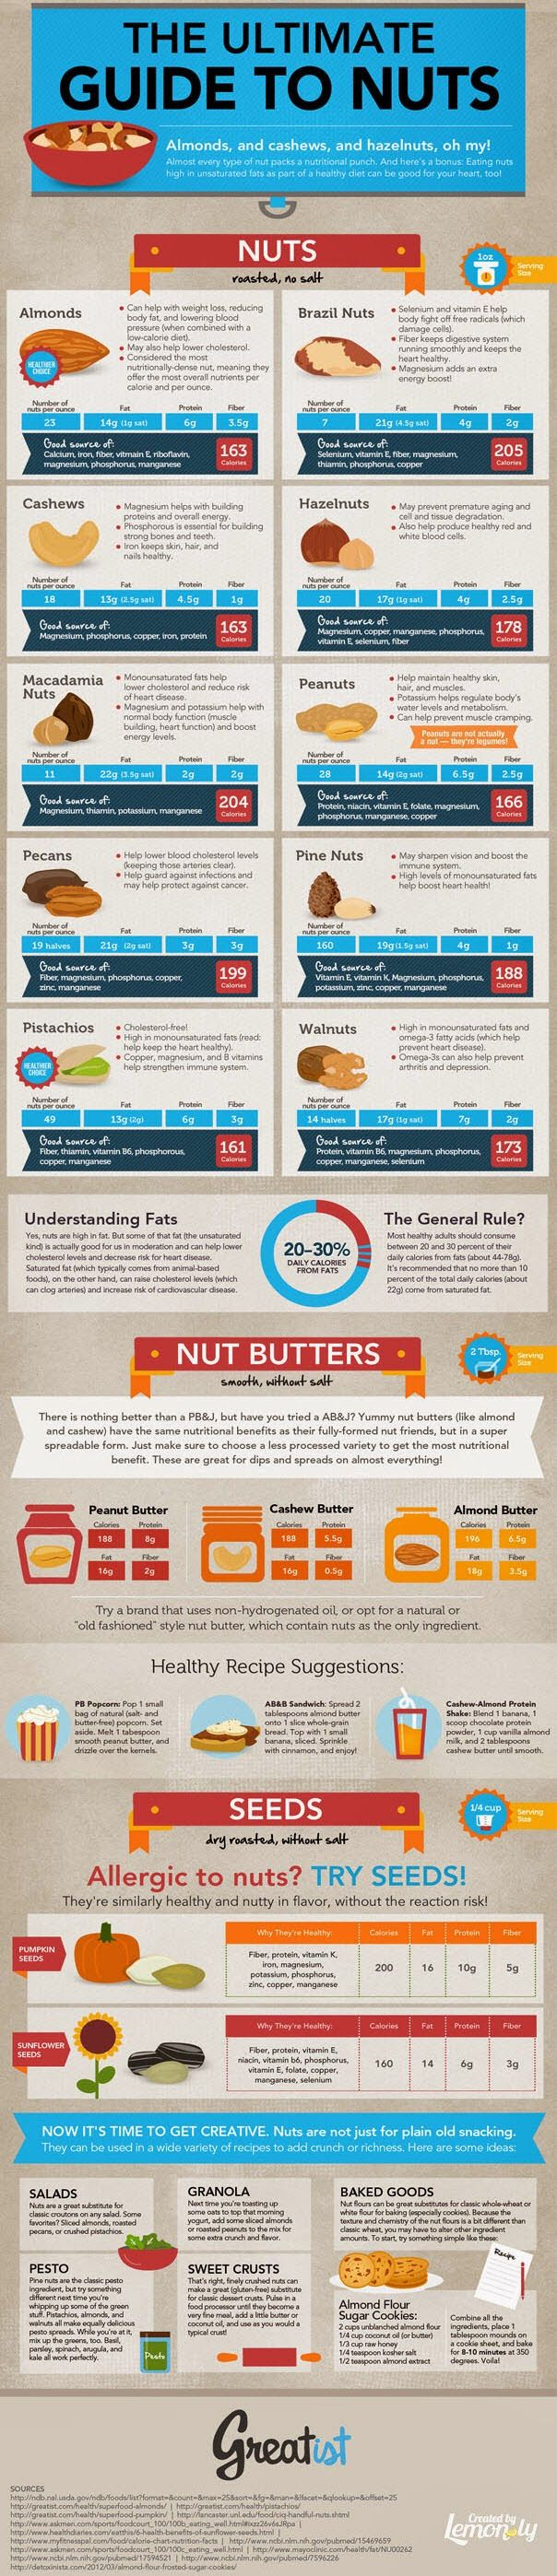 Check out the infographic which shows the health benefits of different nuts like Almonds, Cashews, Hazelnuts, Brazil nuts, Pistachios, Walnuts, Peanuts, Pecans etc.